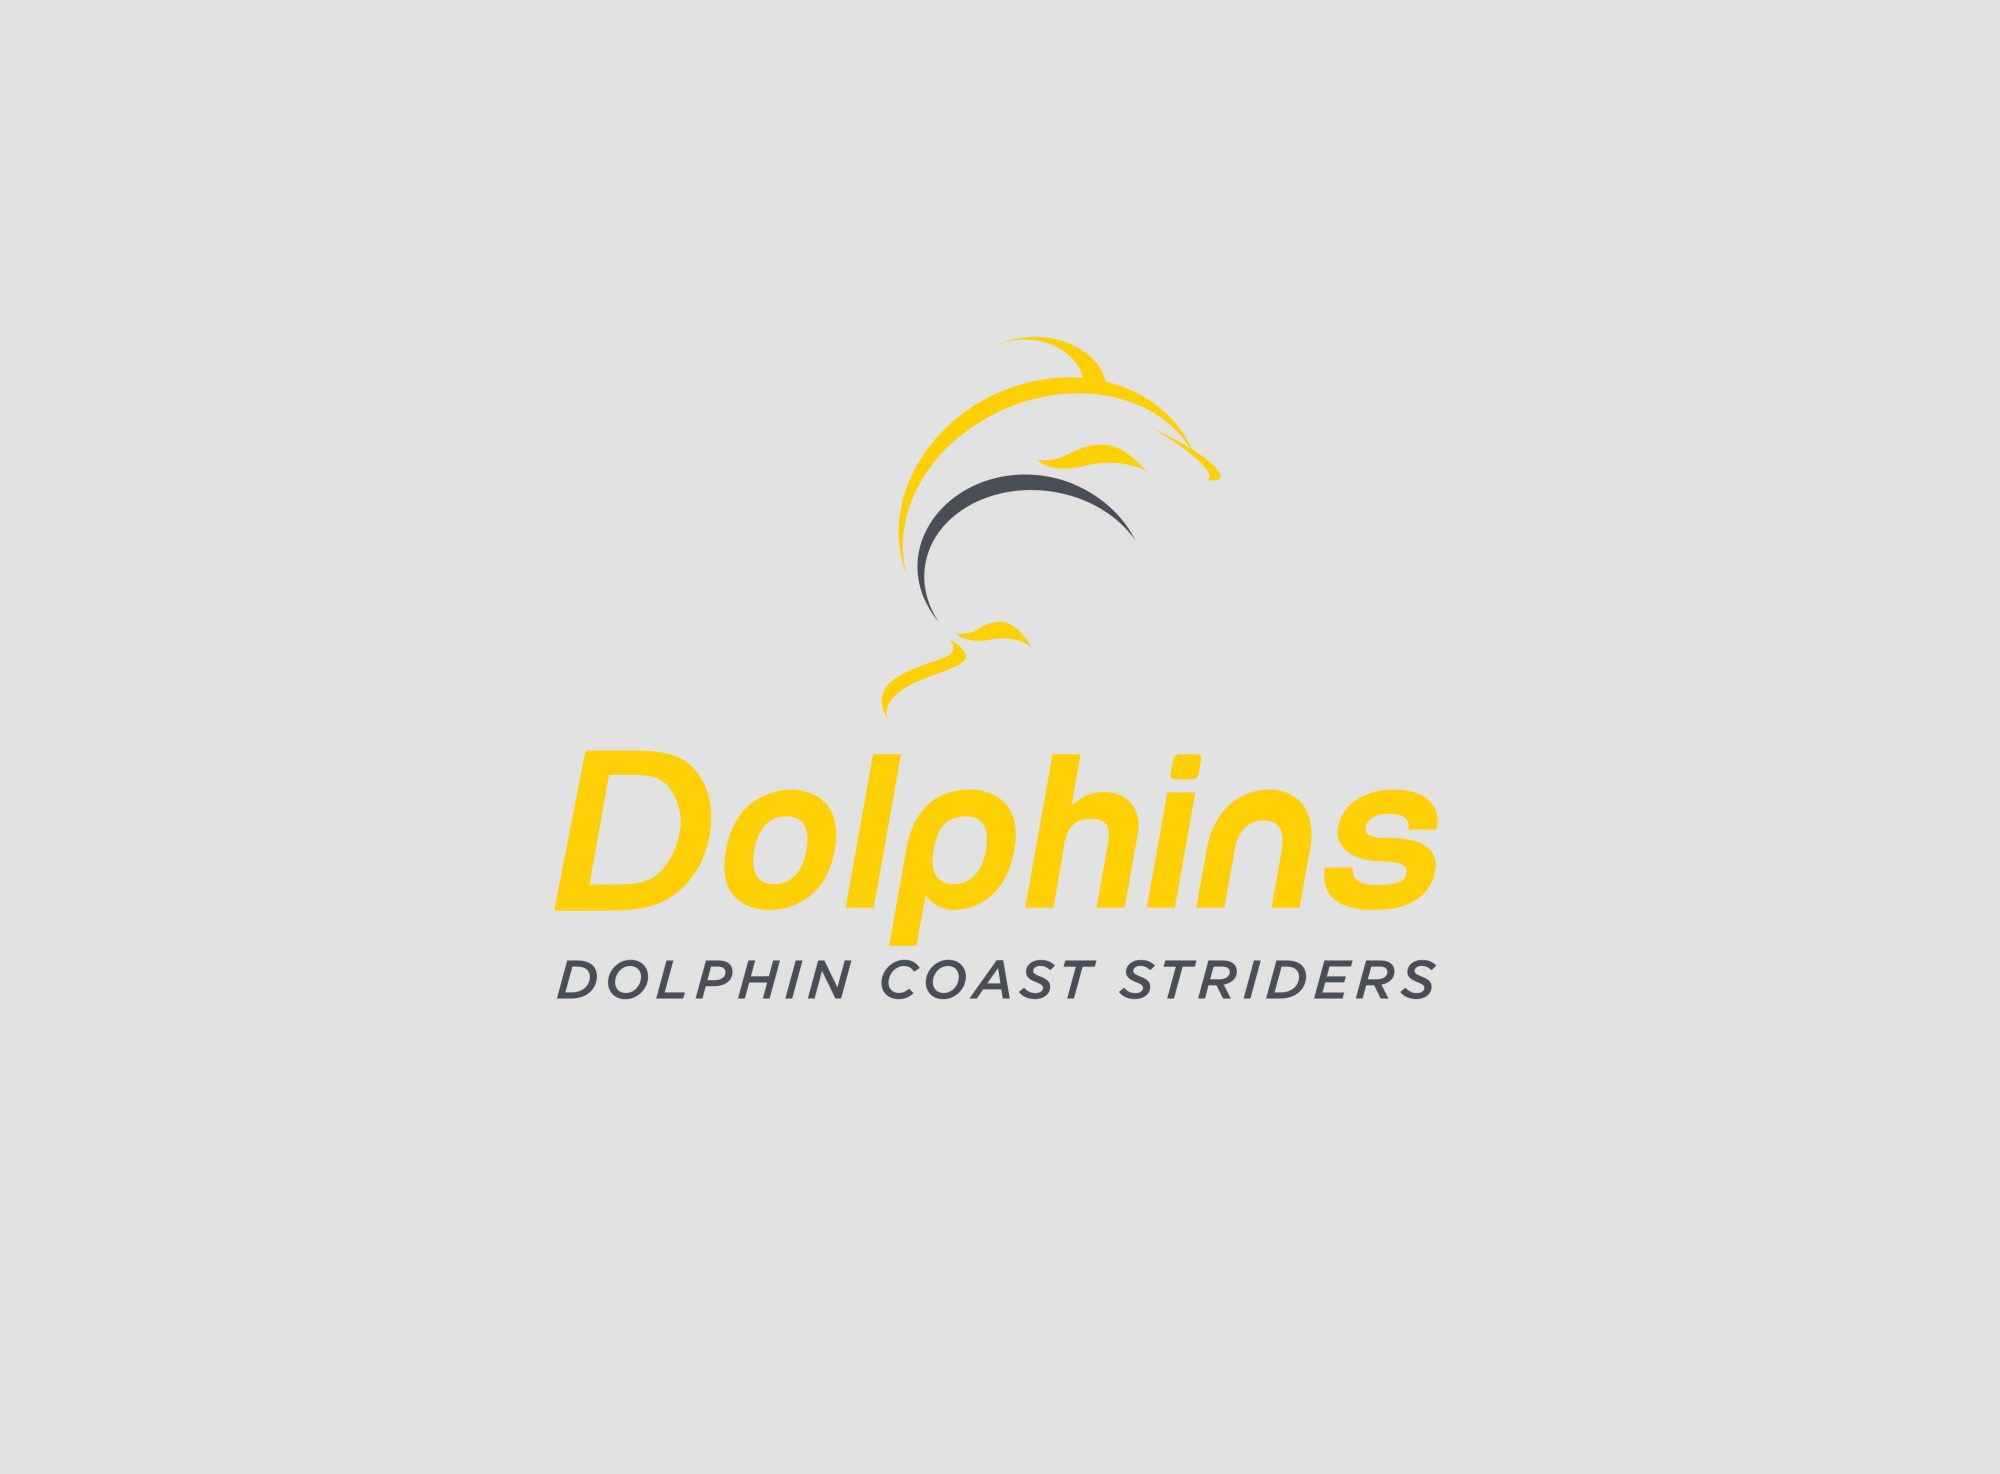 Dolphin Coast Striders